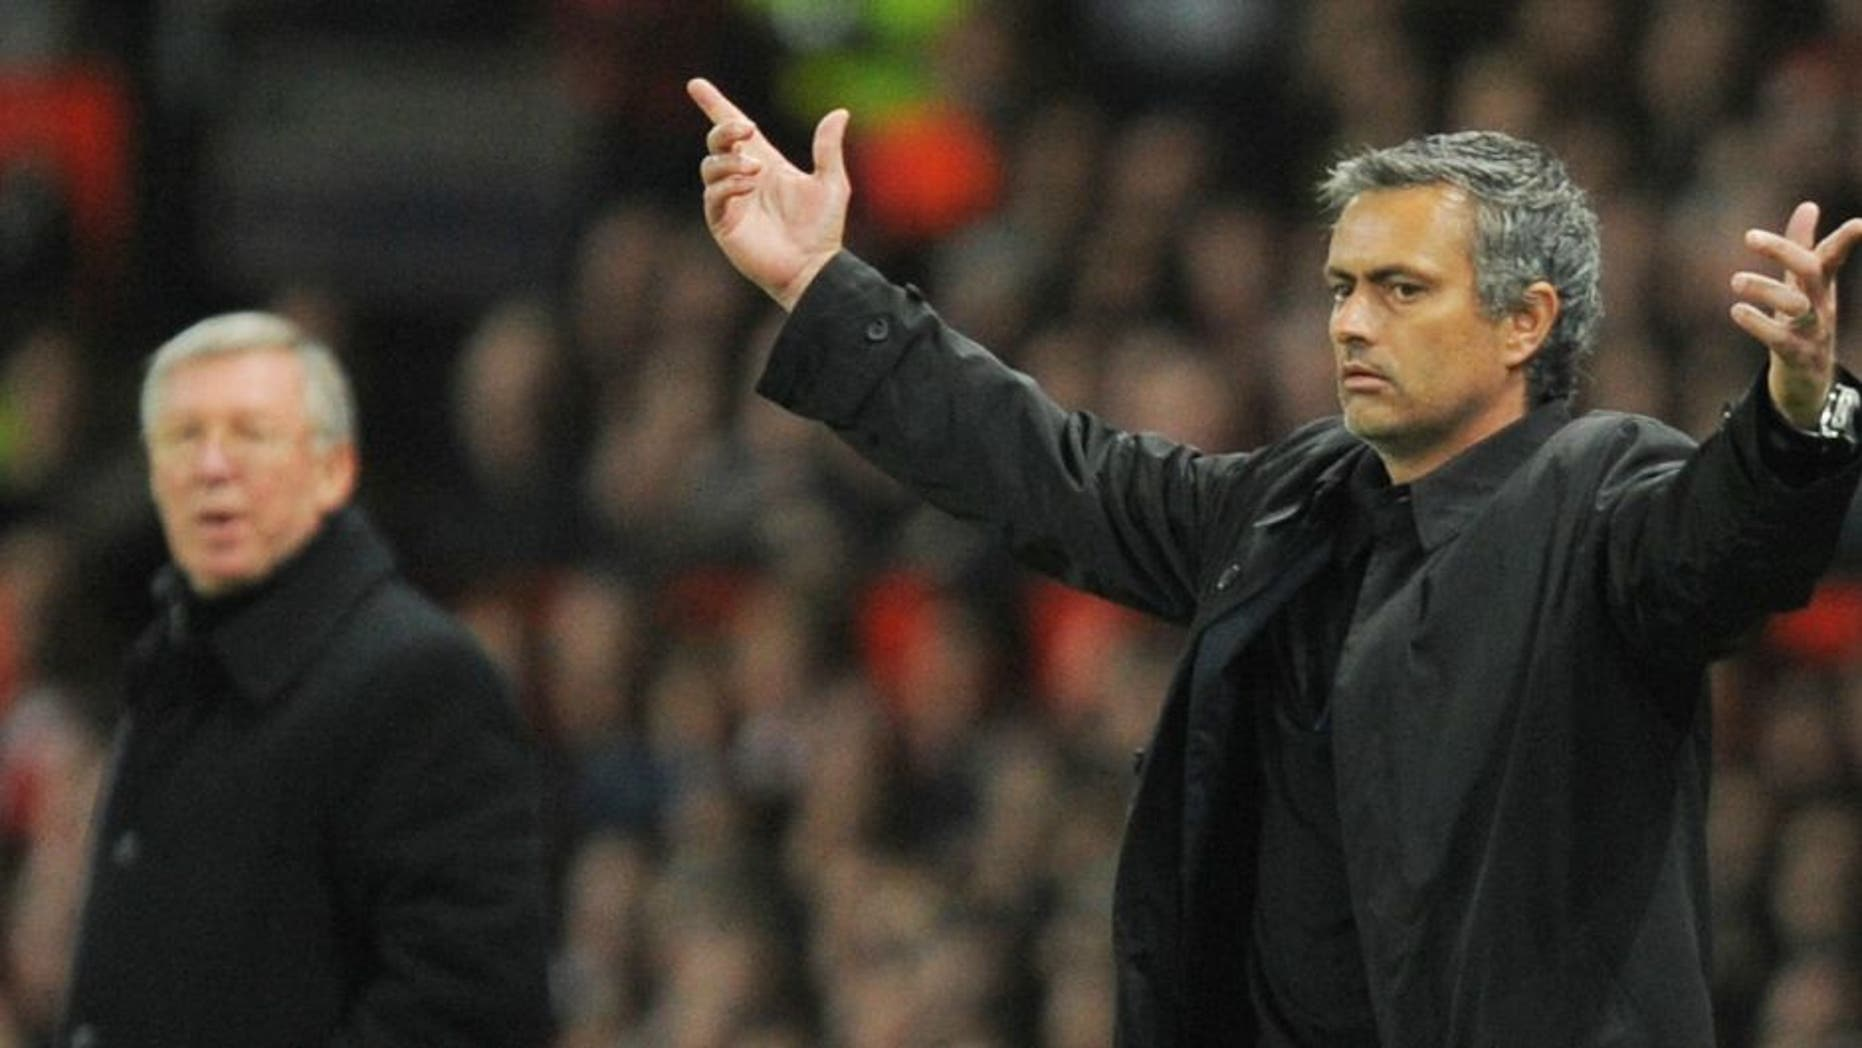 Inter Milan's Portuguese coach Jose Mourinho (R) gestures next to Manchester United manager Sir Alex Ferguson during their UEFA Champions League second round second leg football match at Old Trafford in Manchester, north west England on March 11, 2009. AFP PHOTO/ANDREW YATES (Photo credit should read ANDREW YATES/AFP/Getty Images)